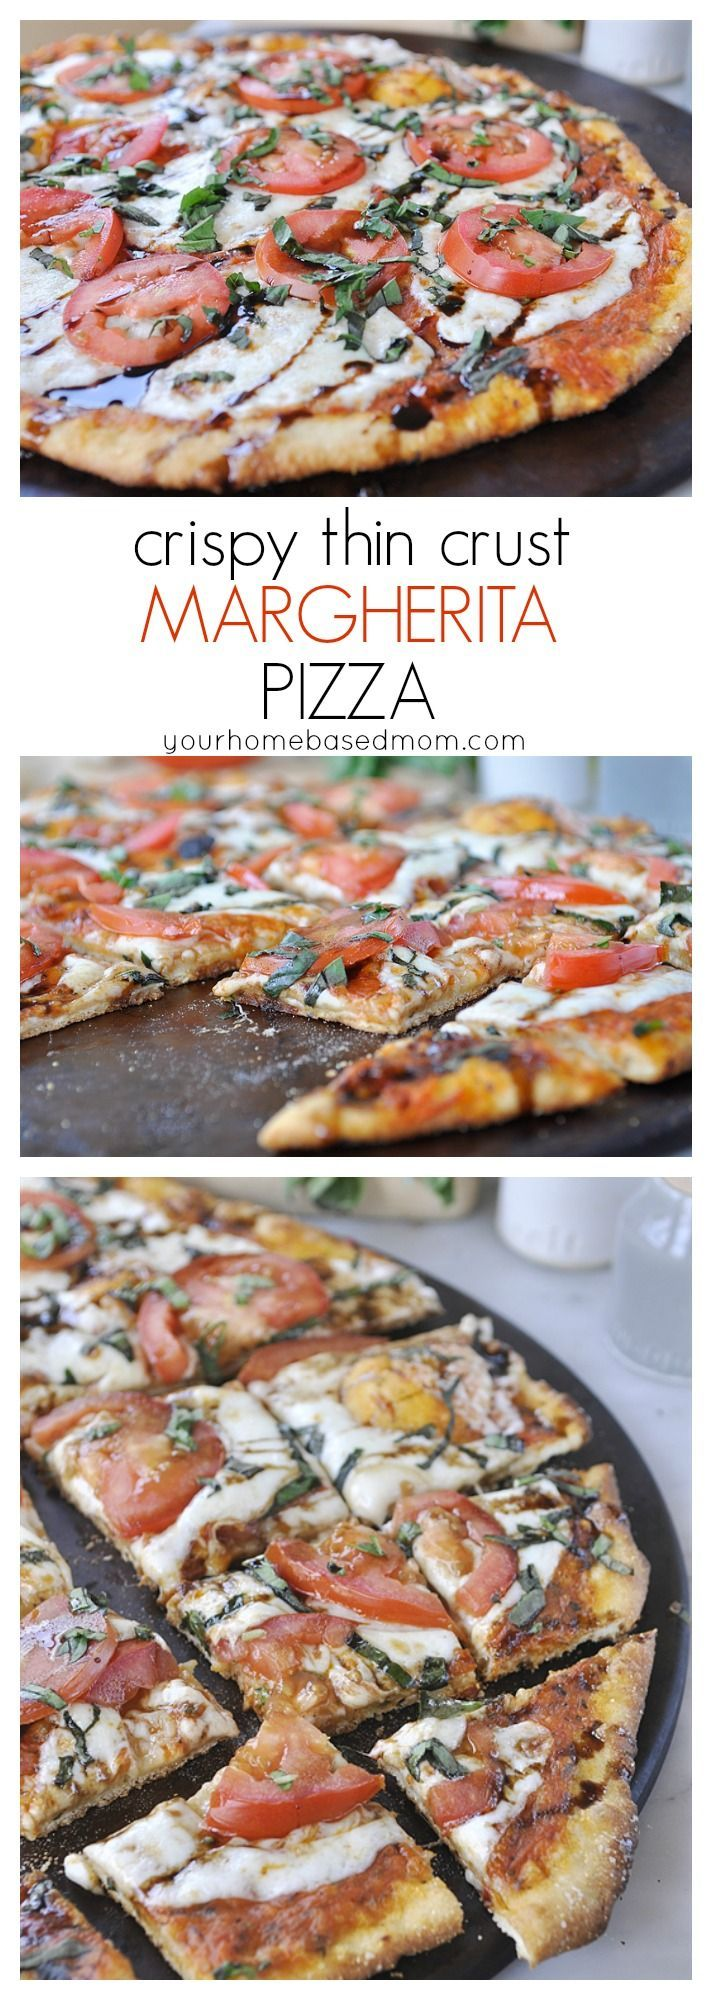 Crispy Thin Crust Margherita Pizza!